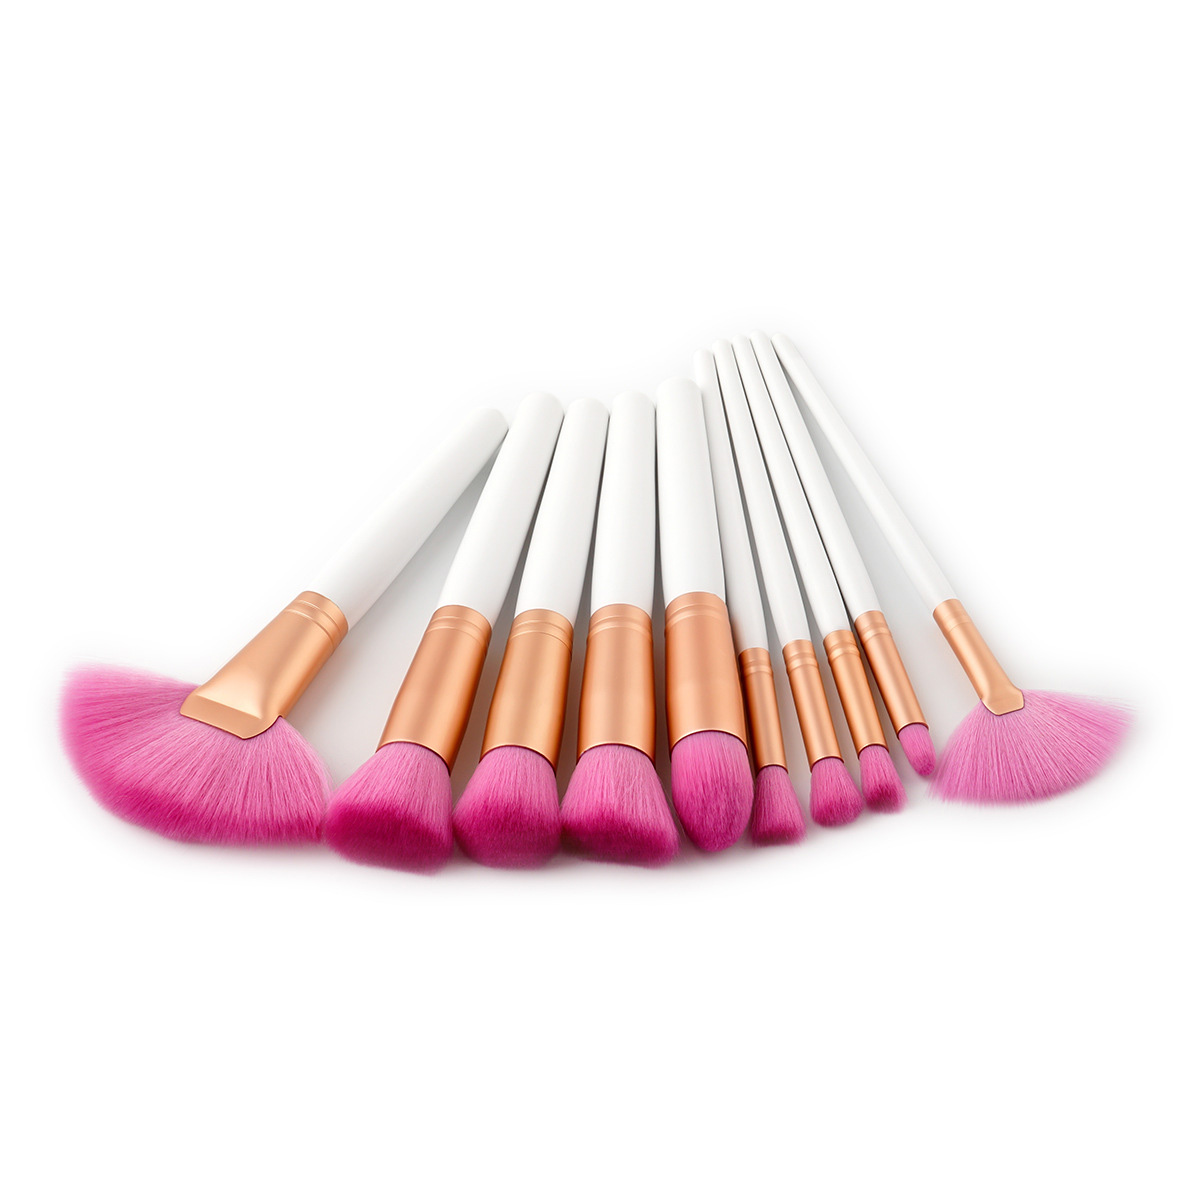 popular cosmetic tool foundation powder contour brush 2019 good sale on ebay amazon 10pcs make up brushes with diamonds